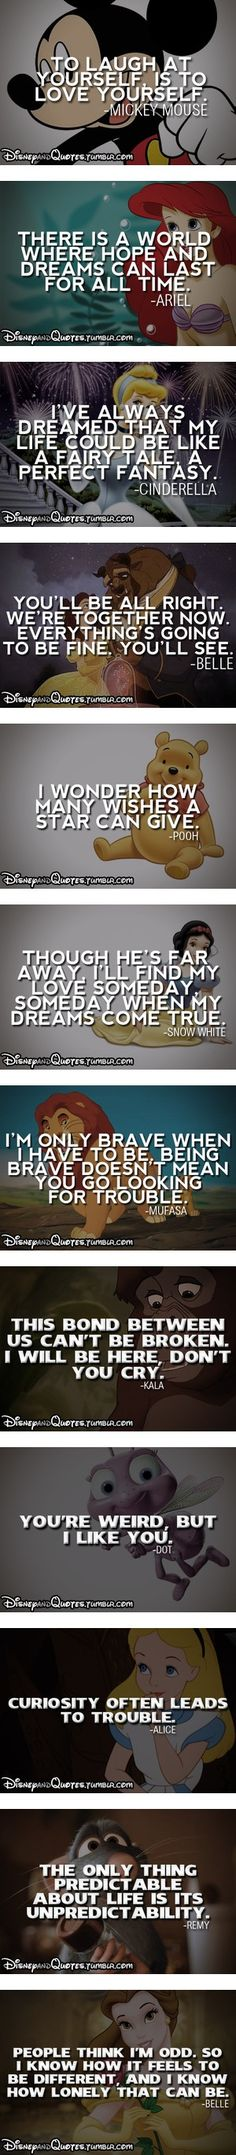 these aren't just meaningless quotes; these are the reason millions of children and adults fell in love with Walt Disney's genius.